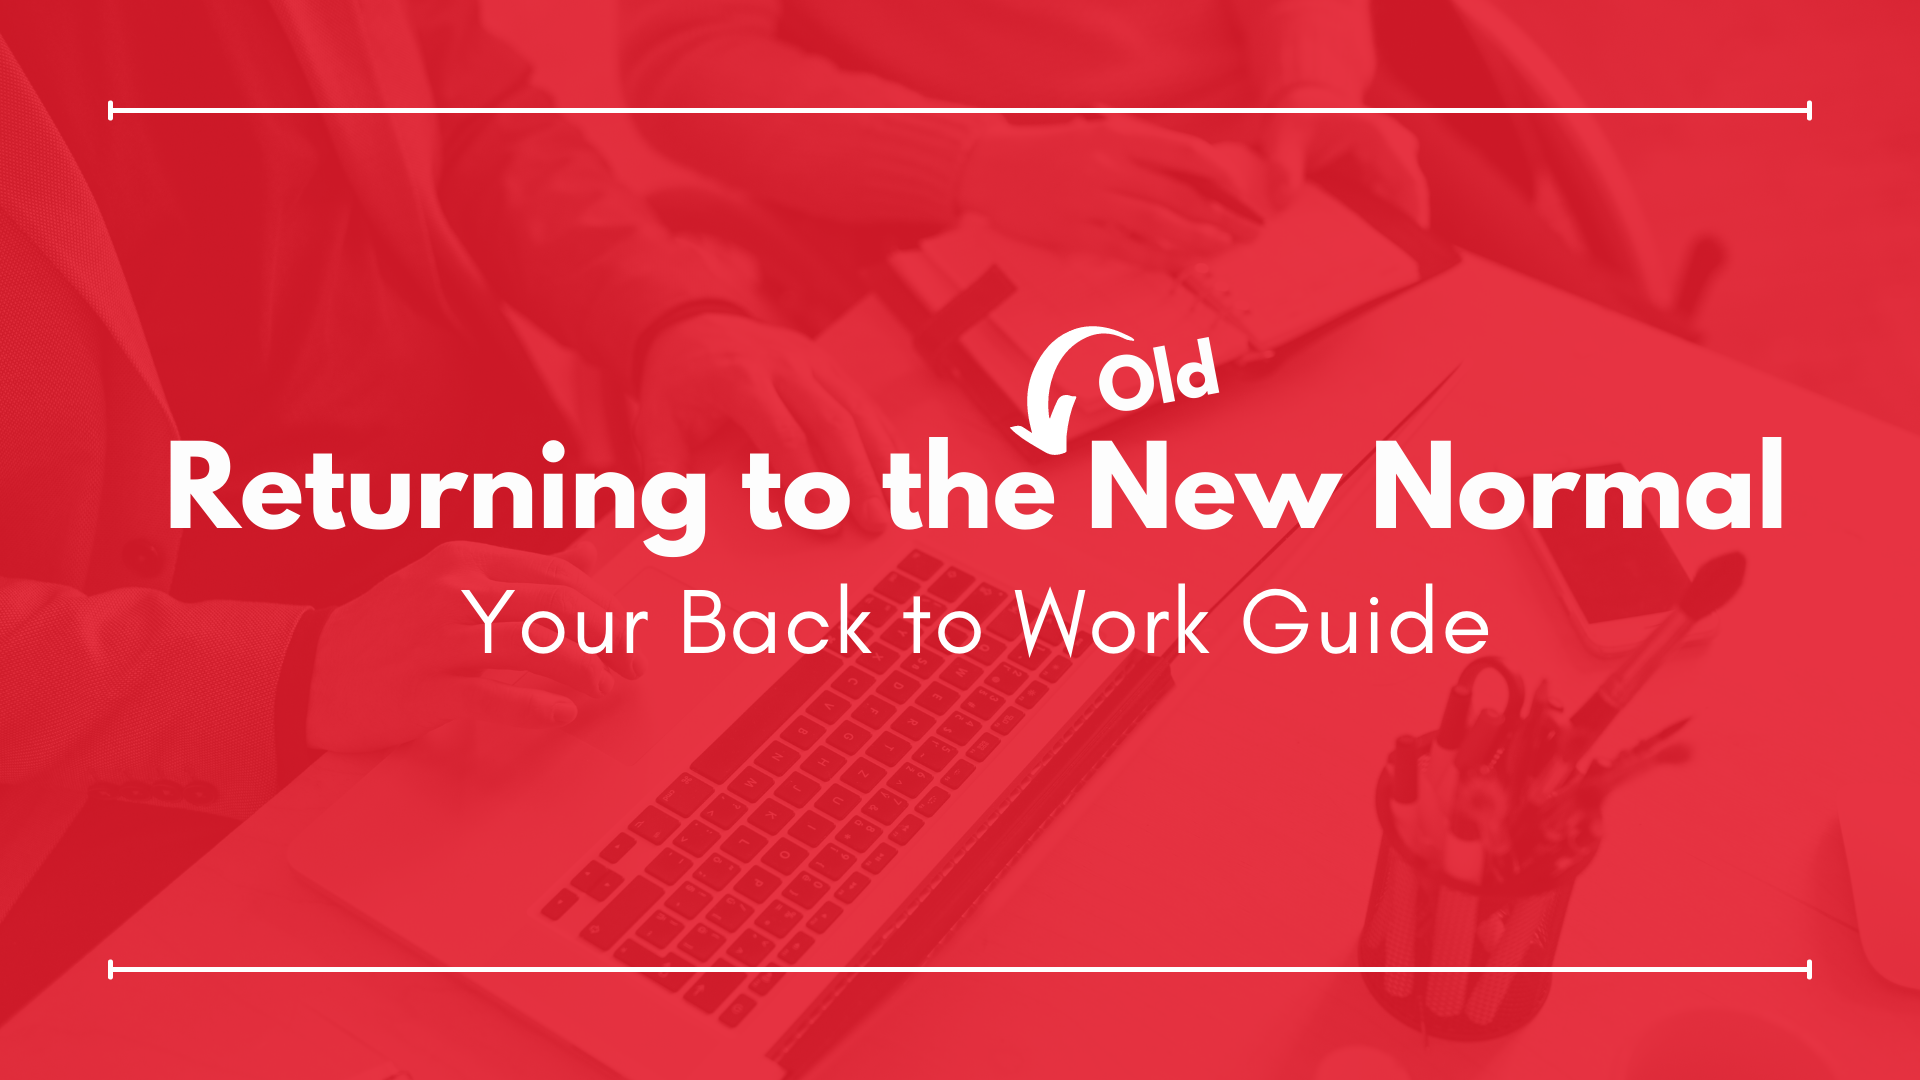 Returning to the (Old) New Normal: Your Back to Work Guide